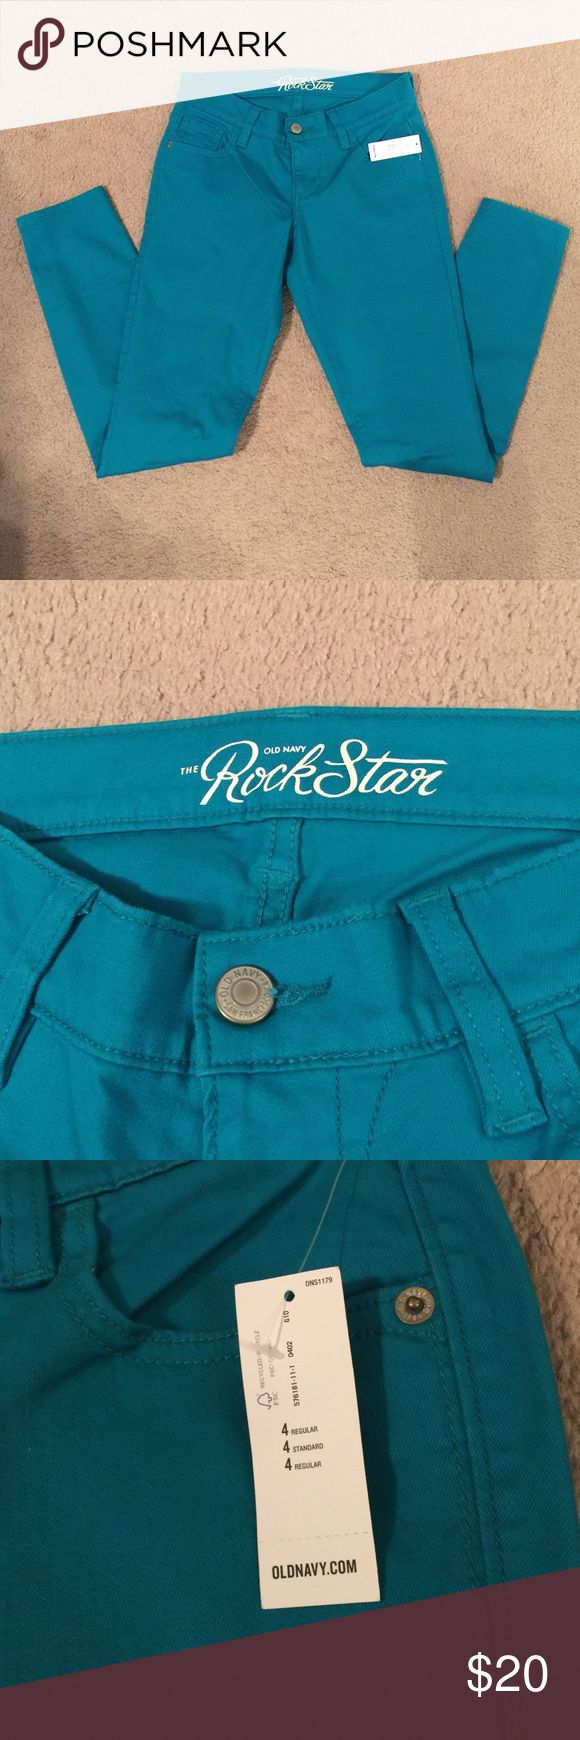 Old Navy Rockstar Jeans NWT!!! Teal colored rockstar jeans from Old Navy. Never worn, new with tags. Size 4 regular. Old Navy Jeans Skinny